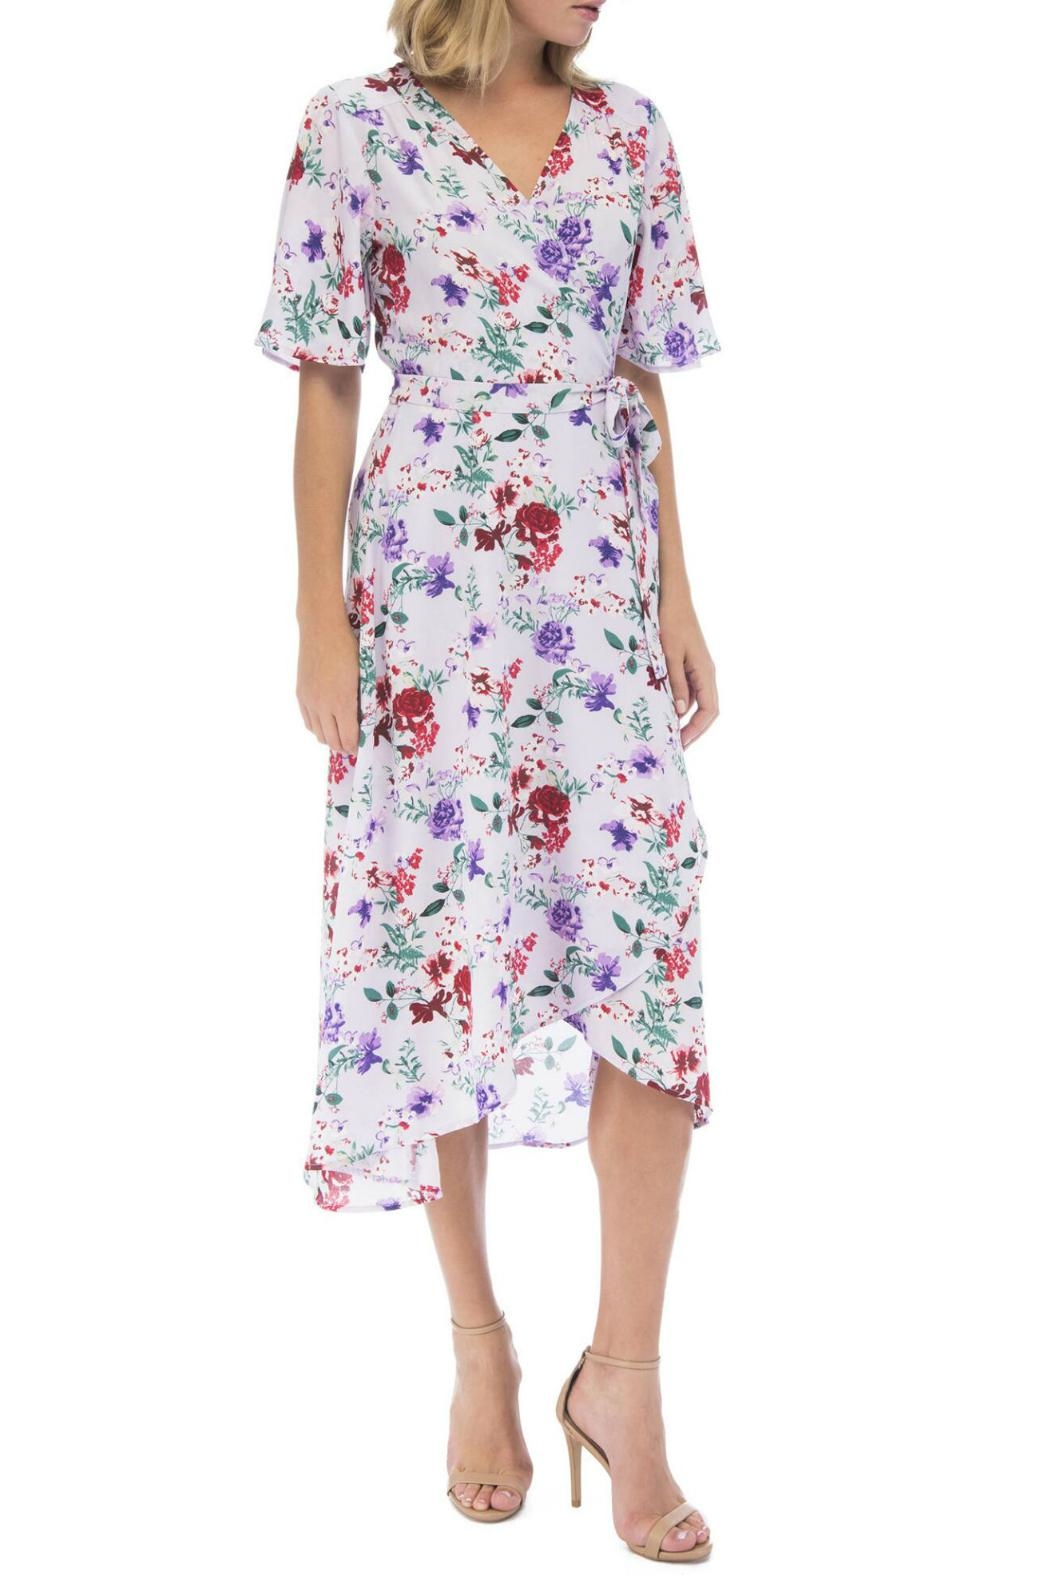 Bobeau Orna Floral Wrap-Dress - Side Cropped Image